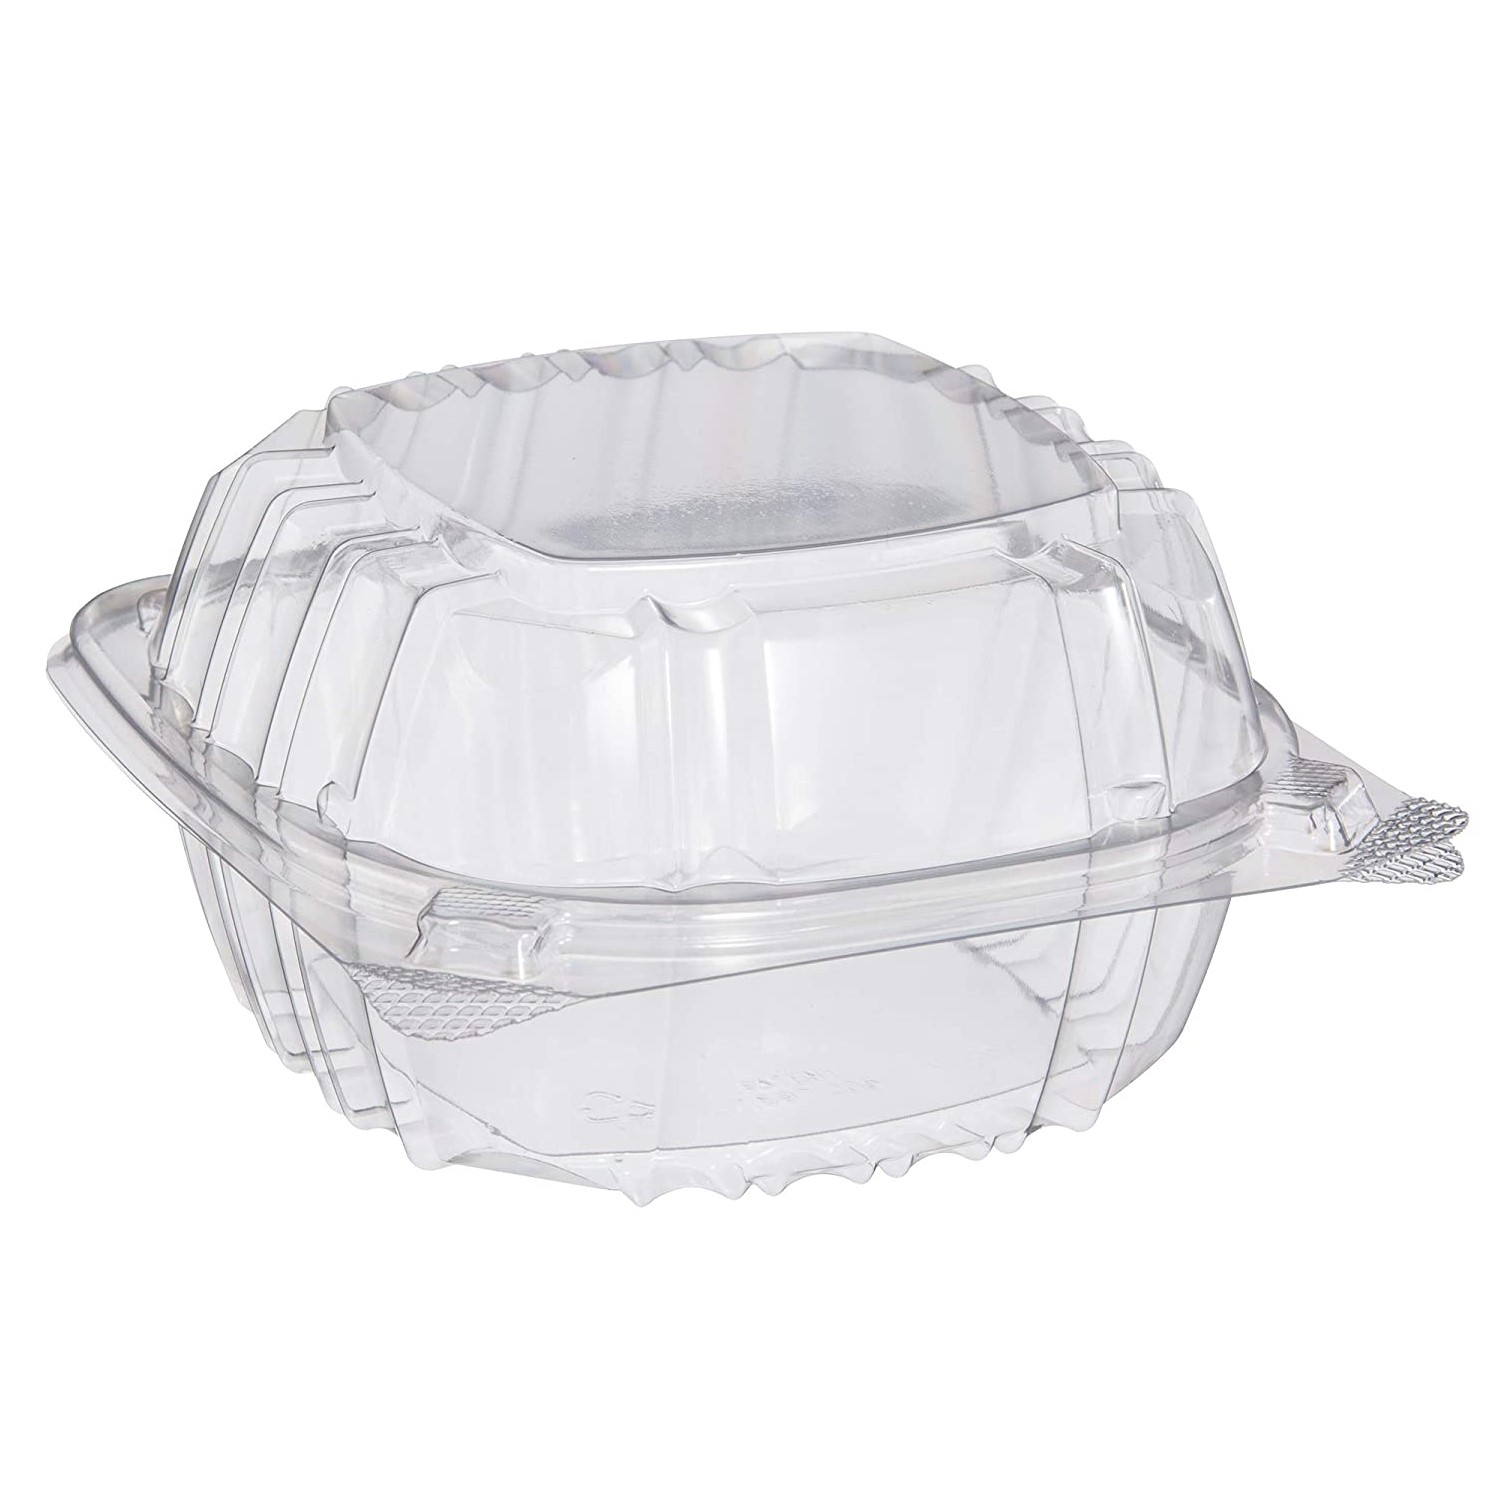 Dart C57PST1 6x6x3 Clear OPS Hinged Salad/Sandwich ClearSeal® Container 500 ct